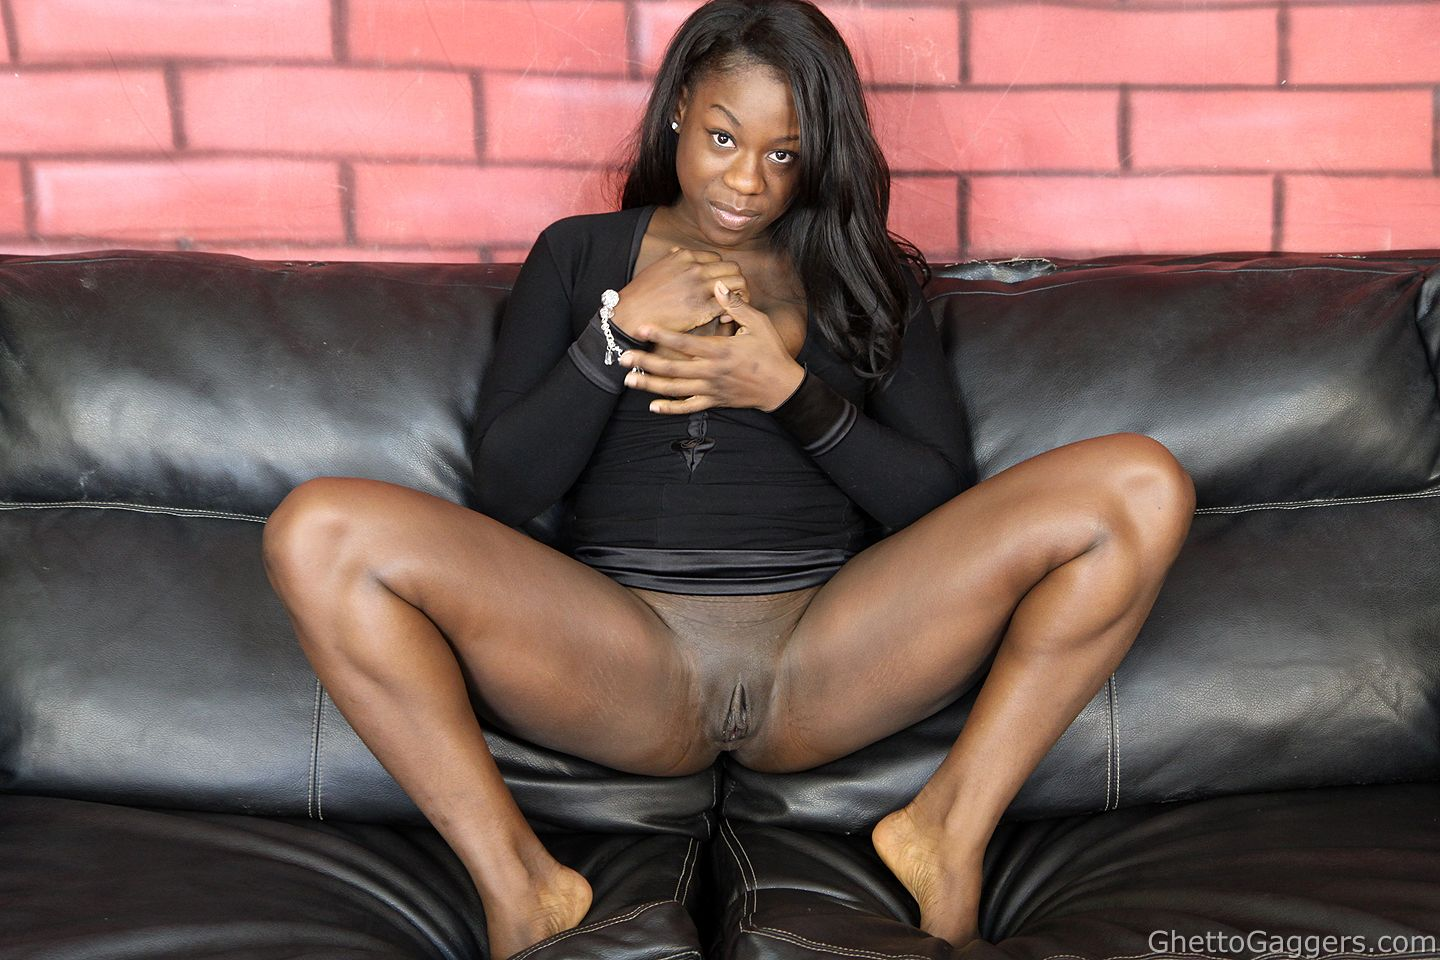 blog quality hardcore pantyhose sex galleries